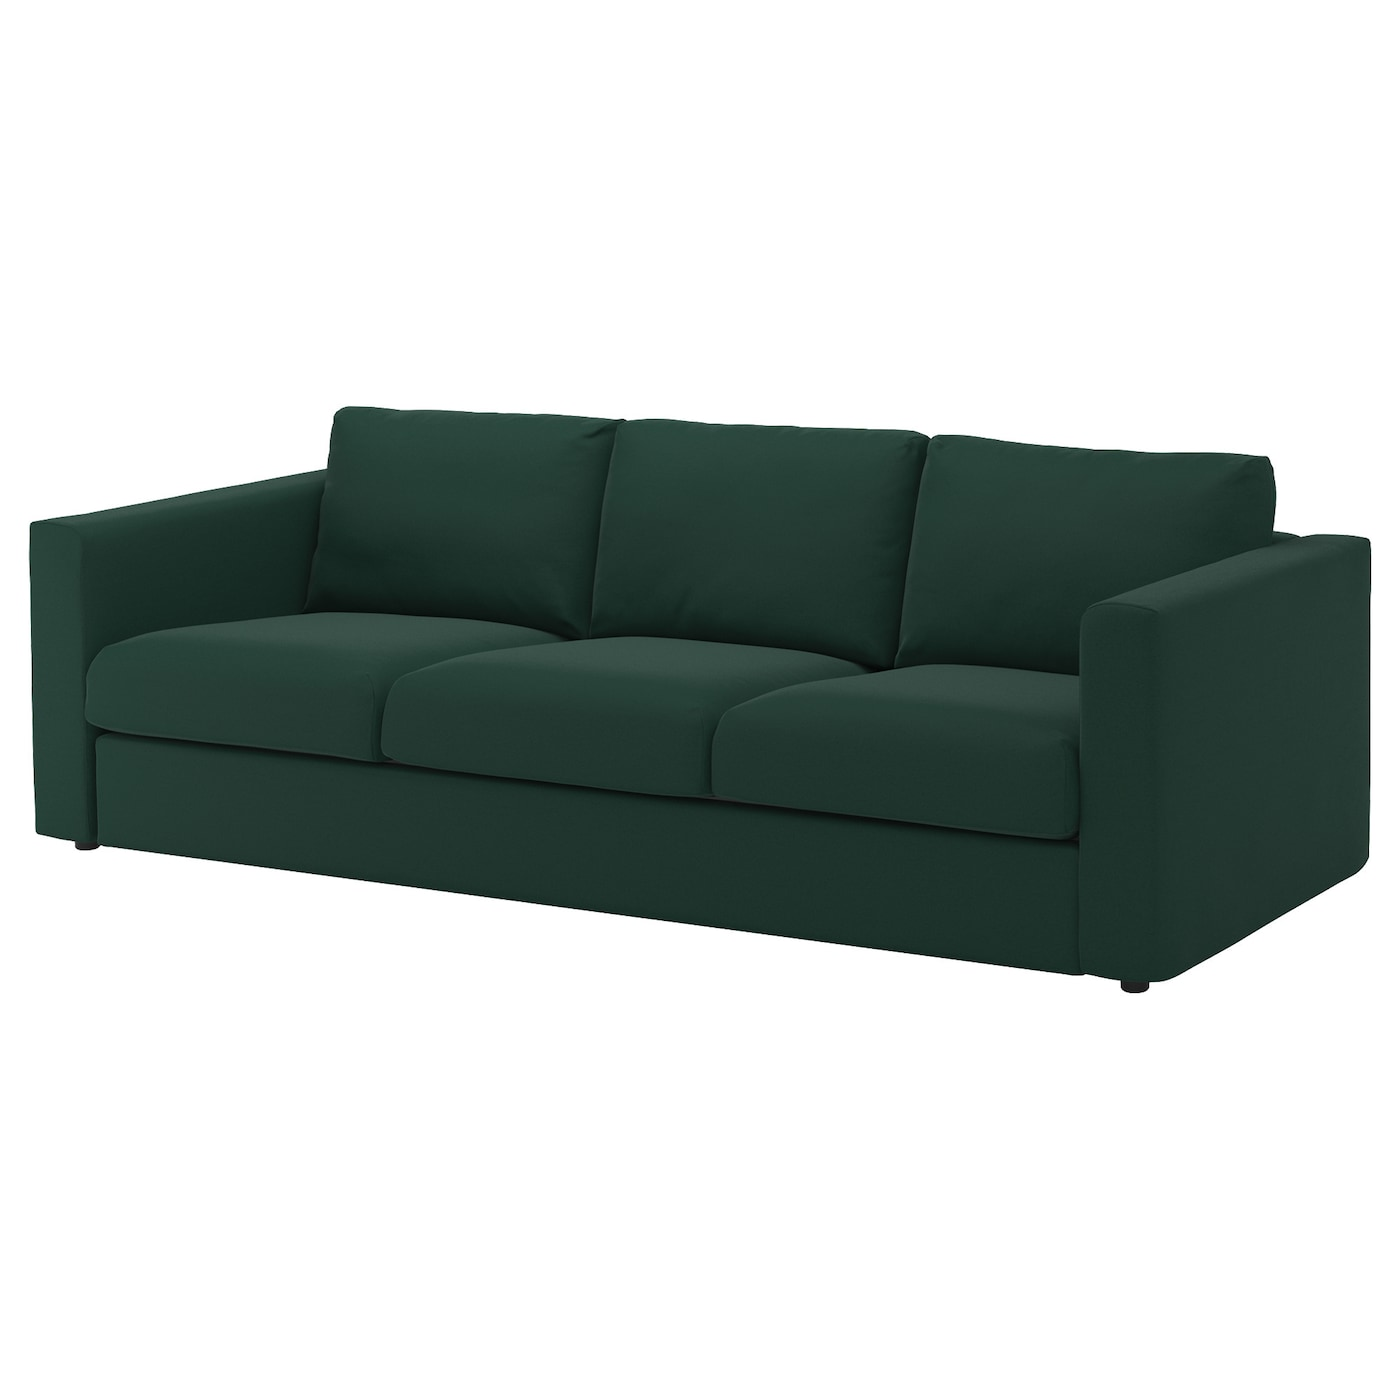 vimle 3 seat sofa gunnared dark green ikea. Black Bedroom Furniture Sets. Home Design Ideas